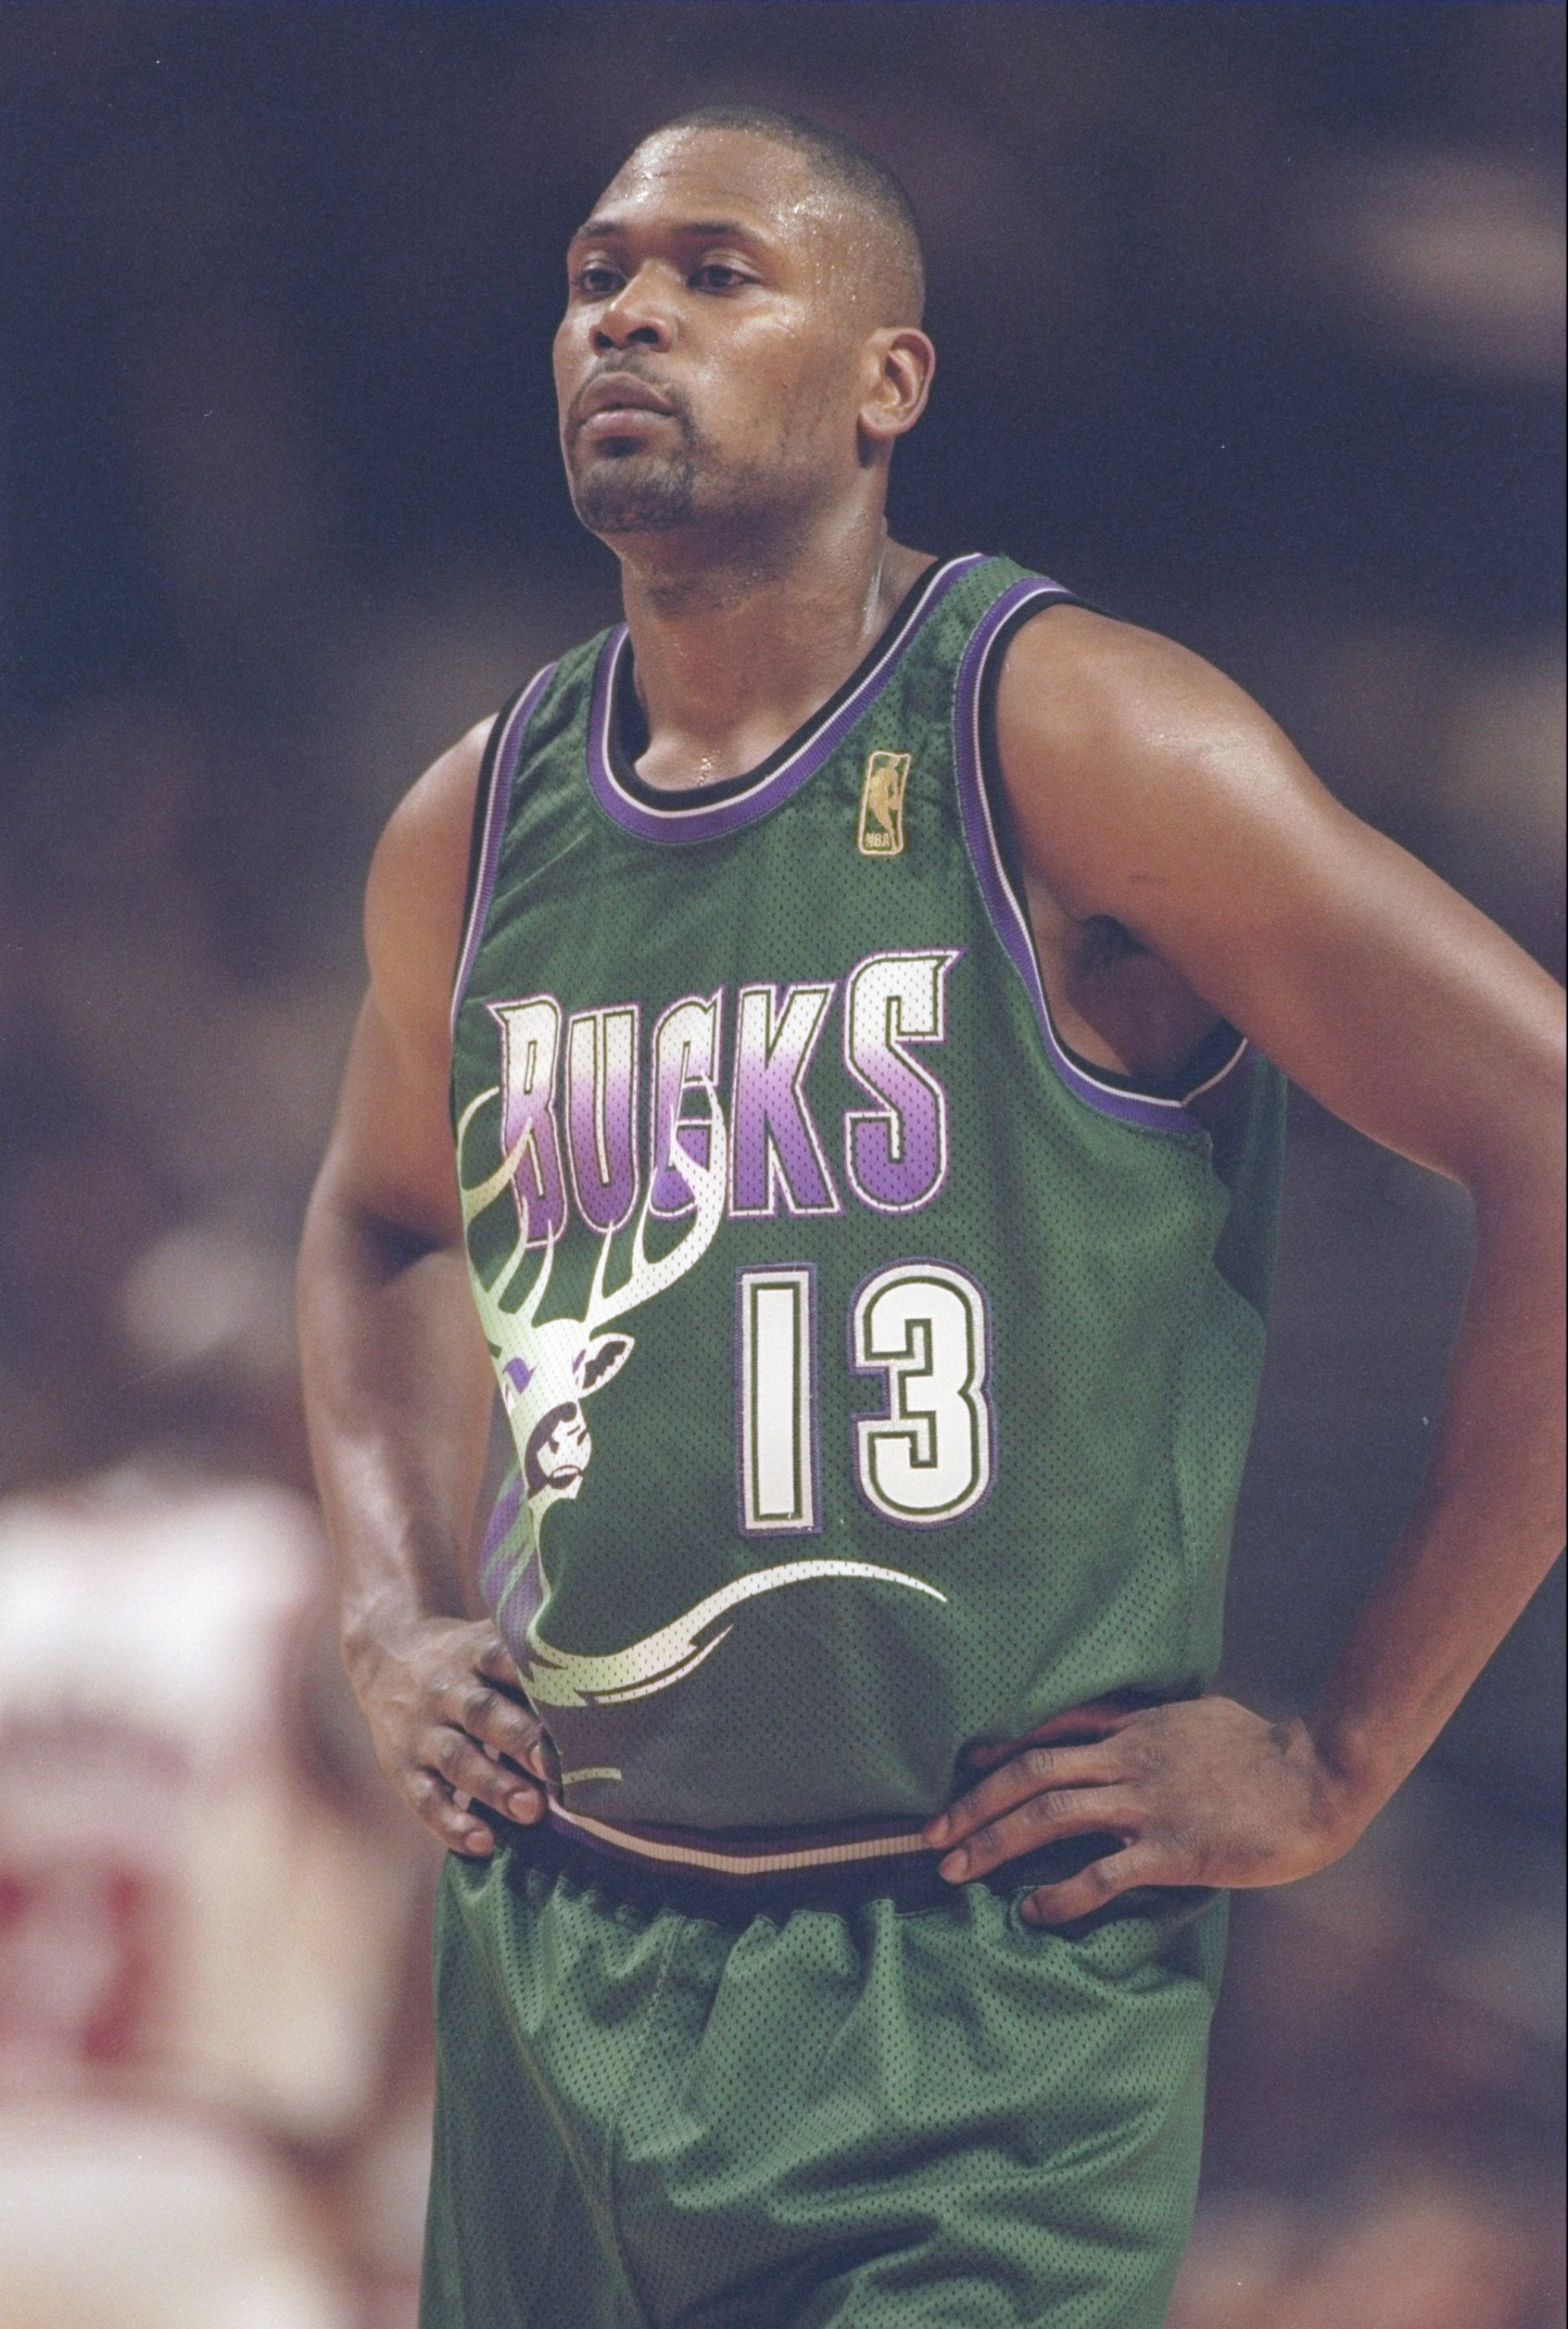 90s-jerseys-bucks.jpg